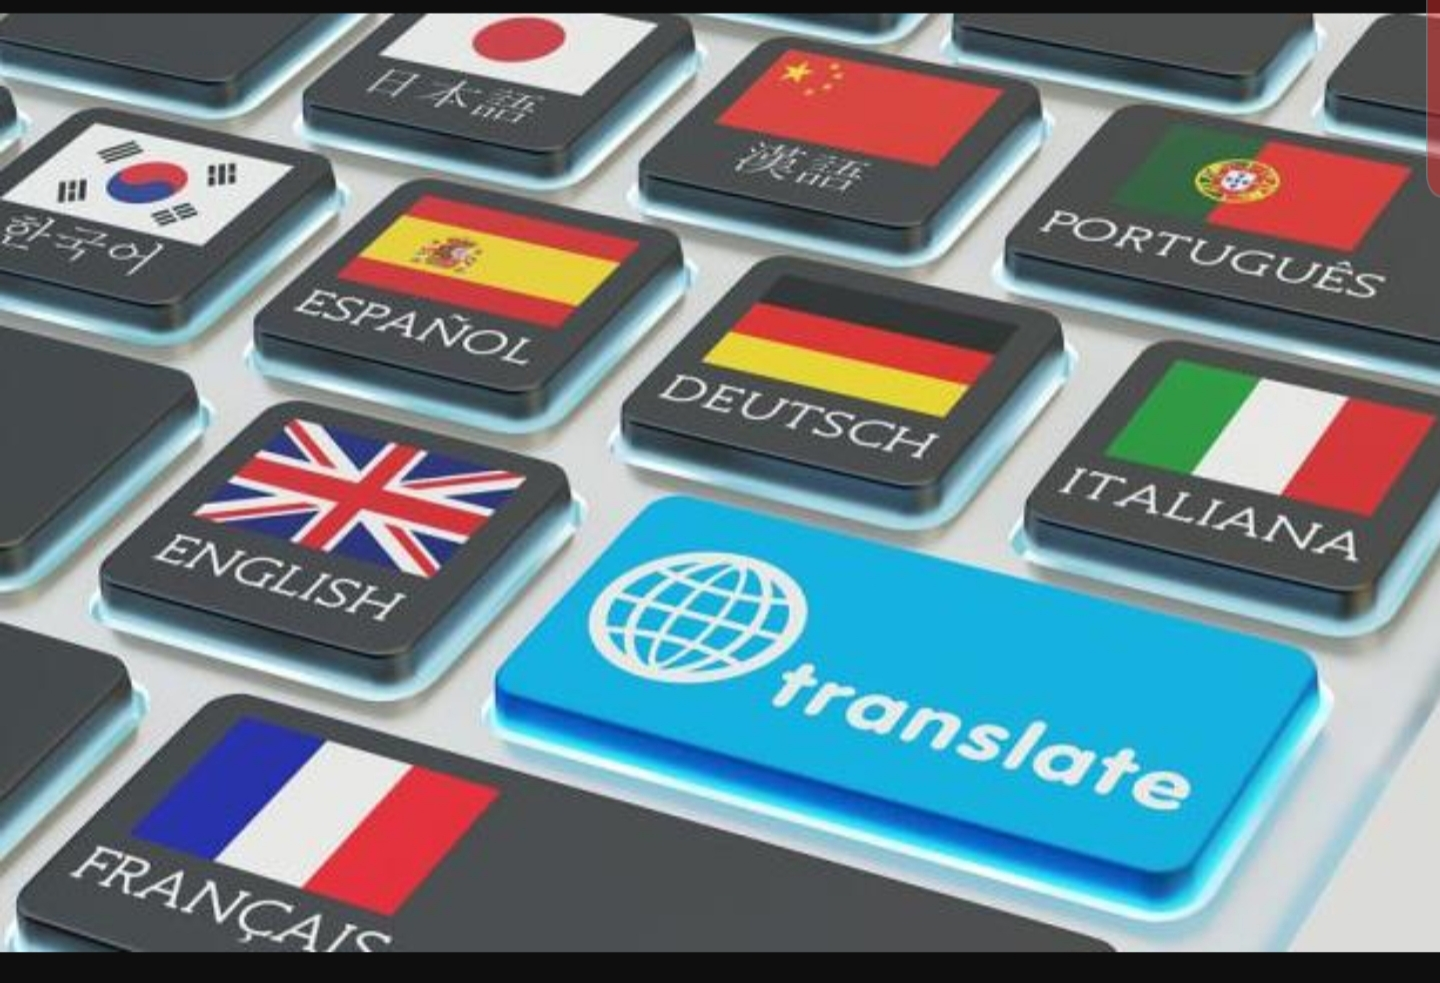 Translate your documents into french, german, spanish and italian